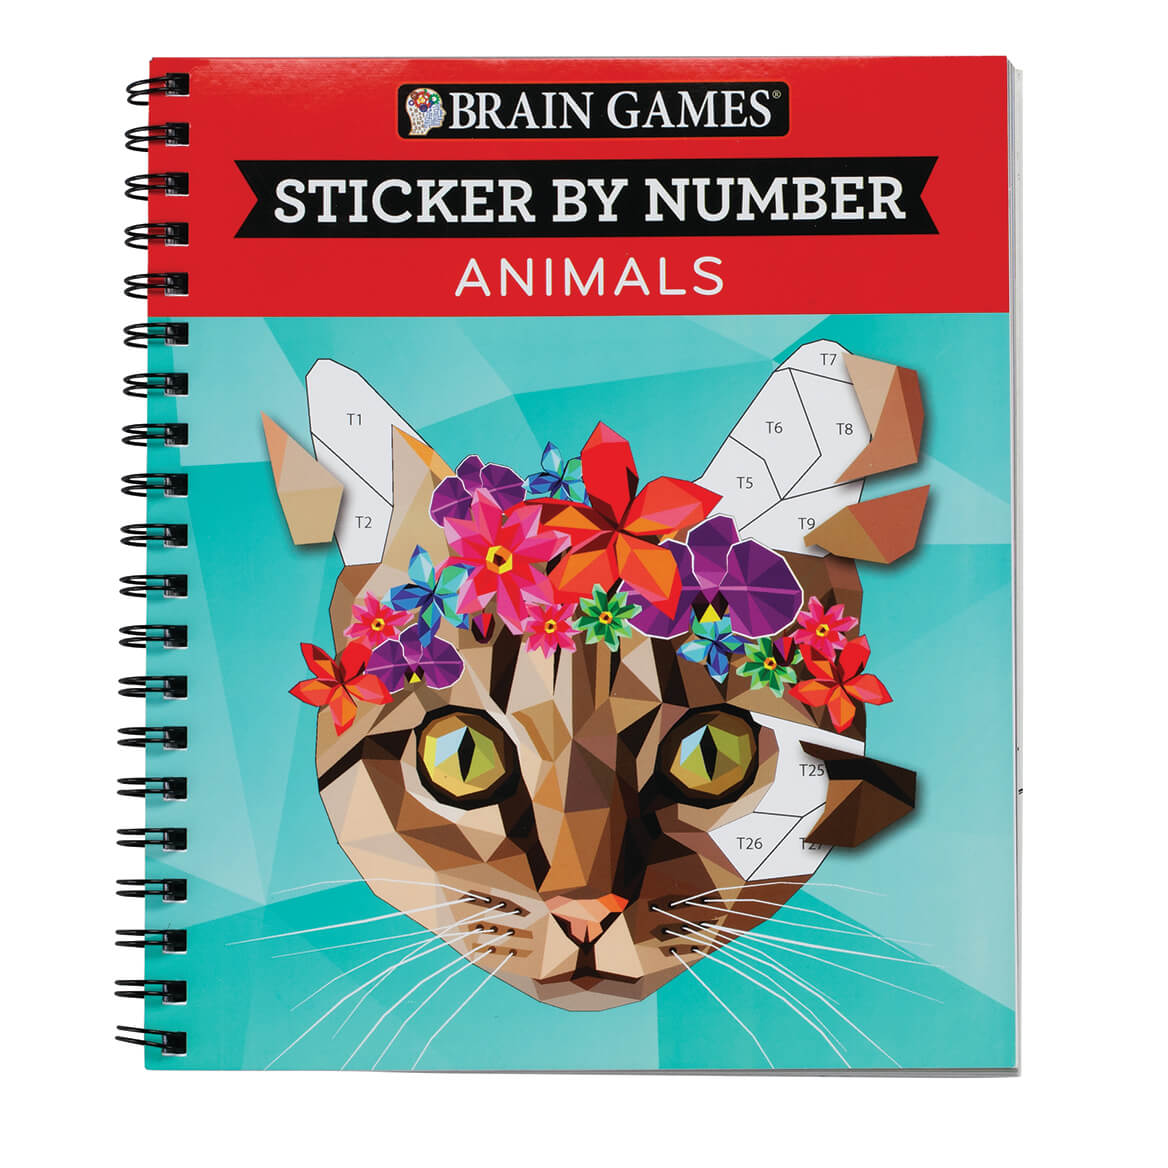 Details About Brain Games Sticker By Number Animals Book